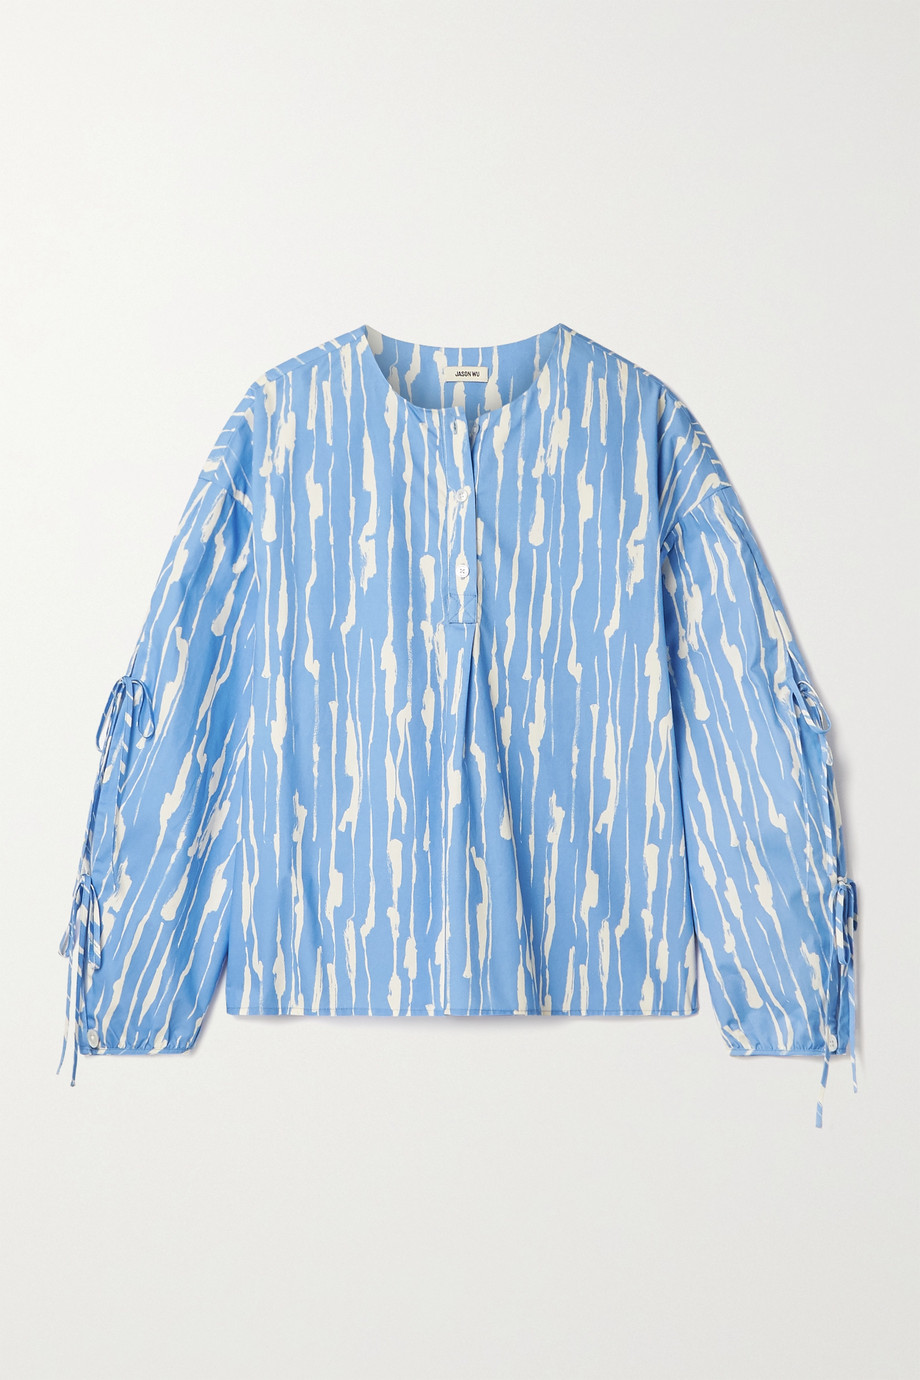 Jason Wu Printed cotton-poplin blouse